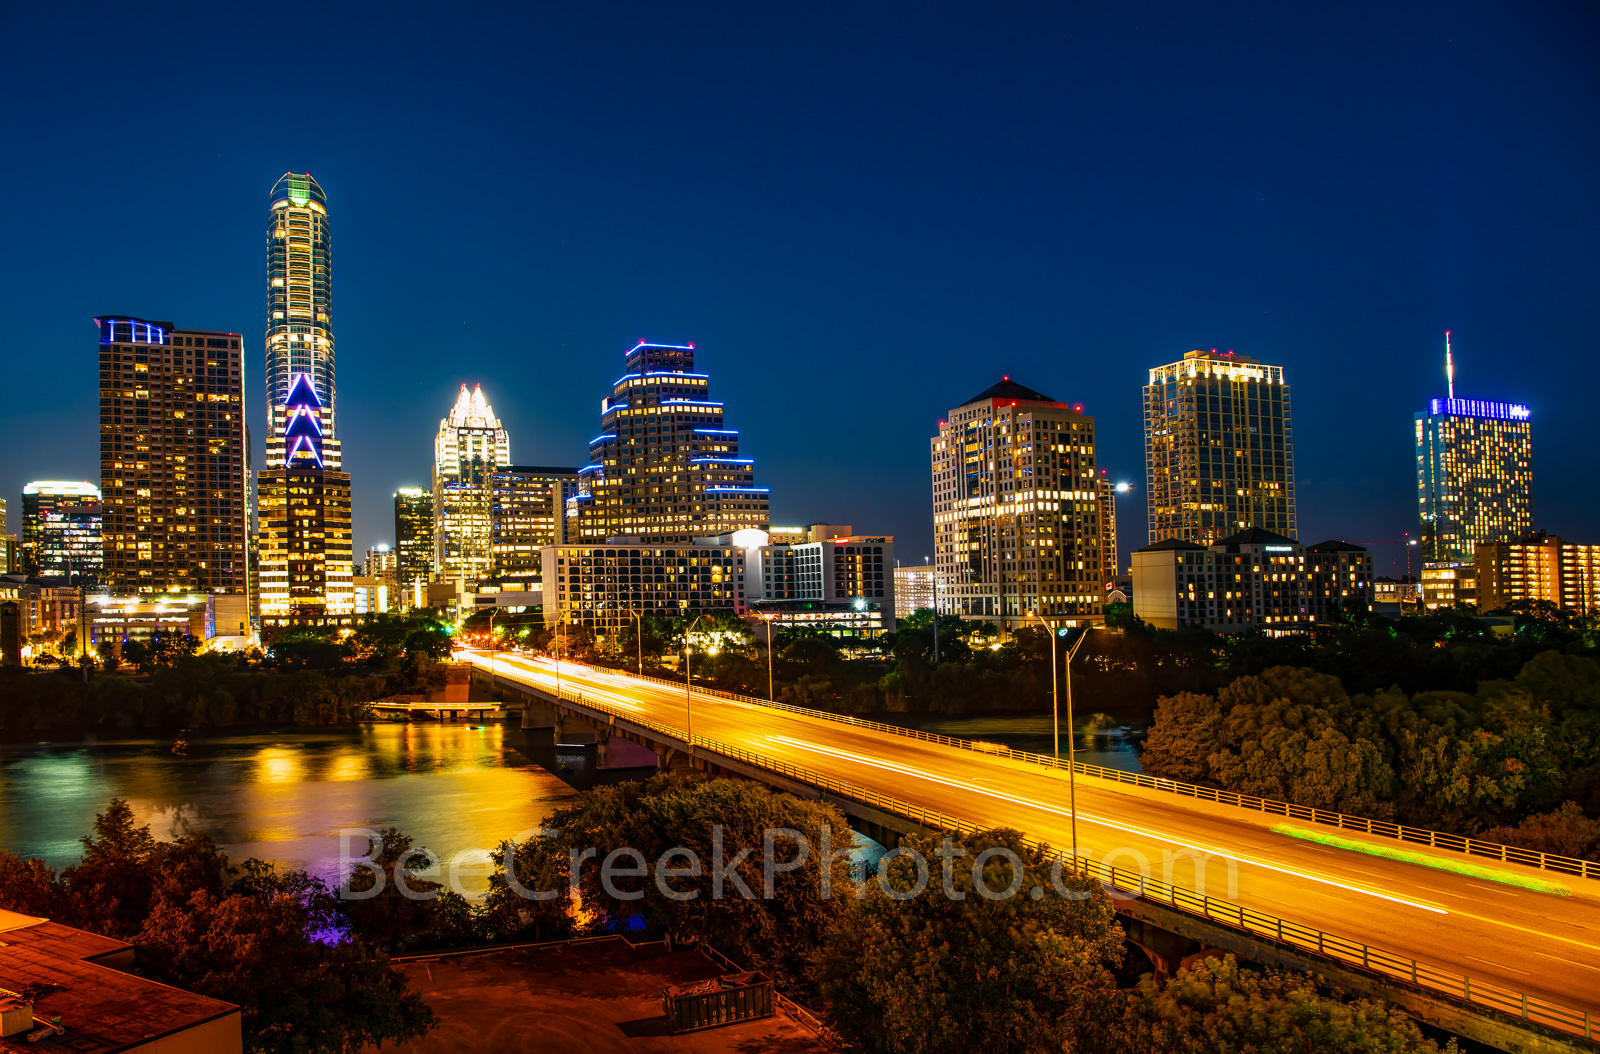 Austin, Downtown, austin Skyline pictures, skyline, cityscape, congress, ave, Austonian, Frost, Fairmont, night, dark, street, Ann Richards Congress Ave, bat bridge, , photo